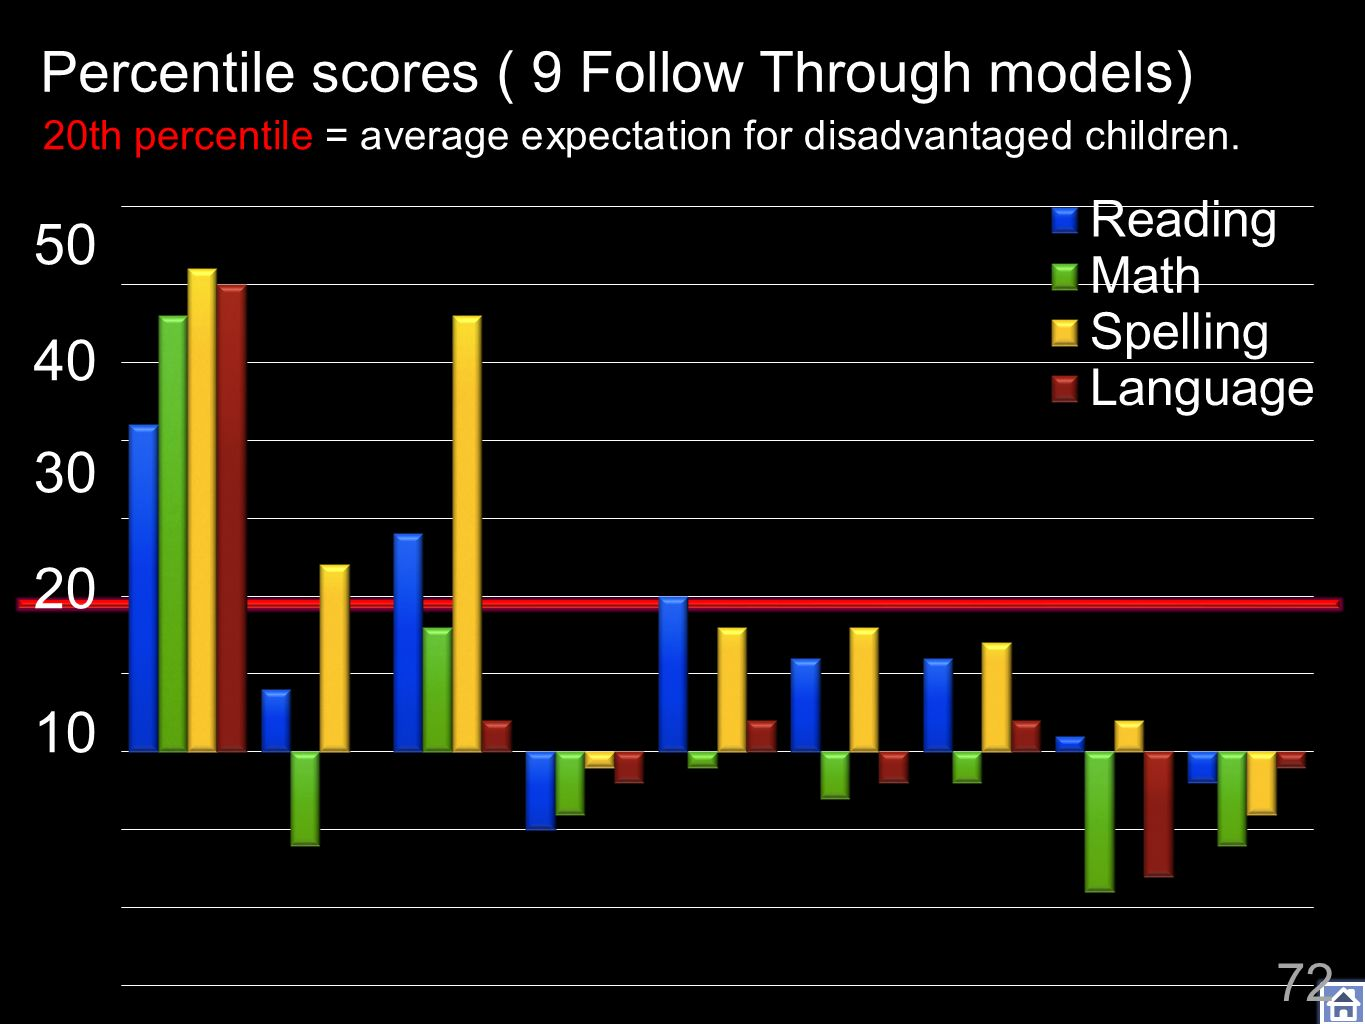 Project Follow Through: Percentile scores